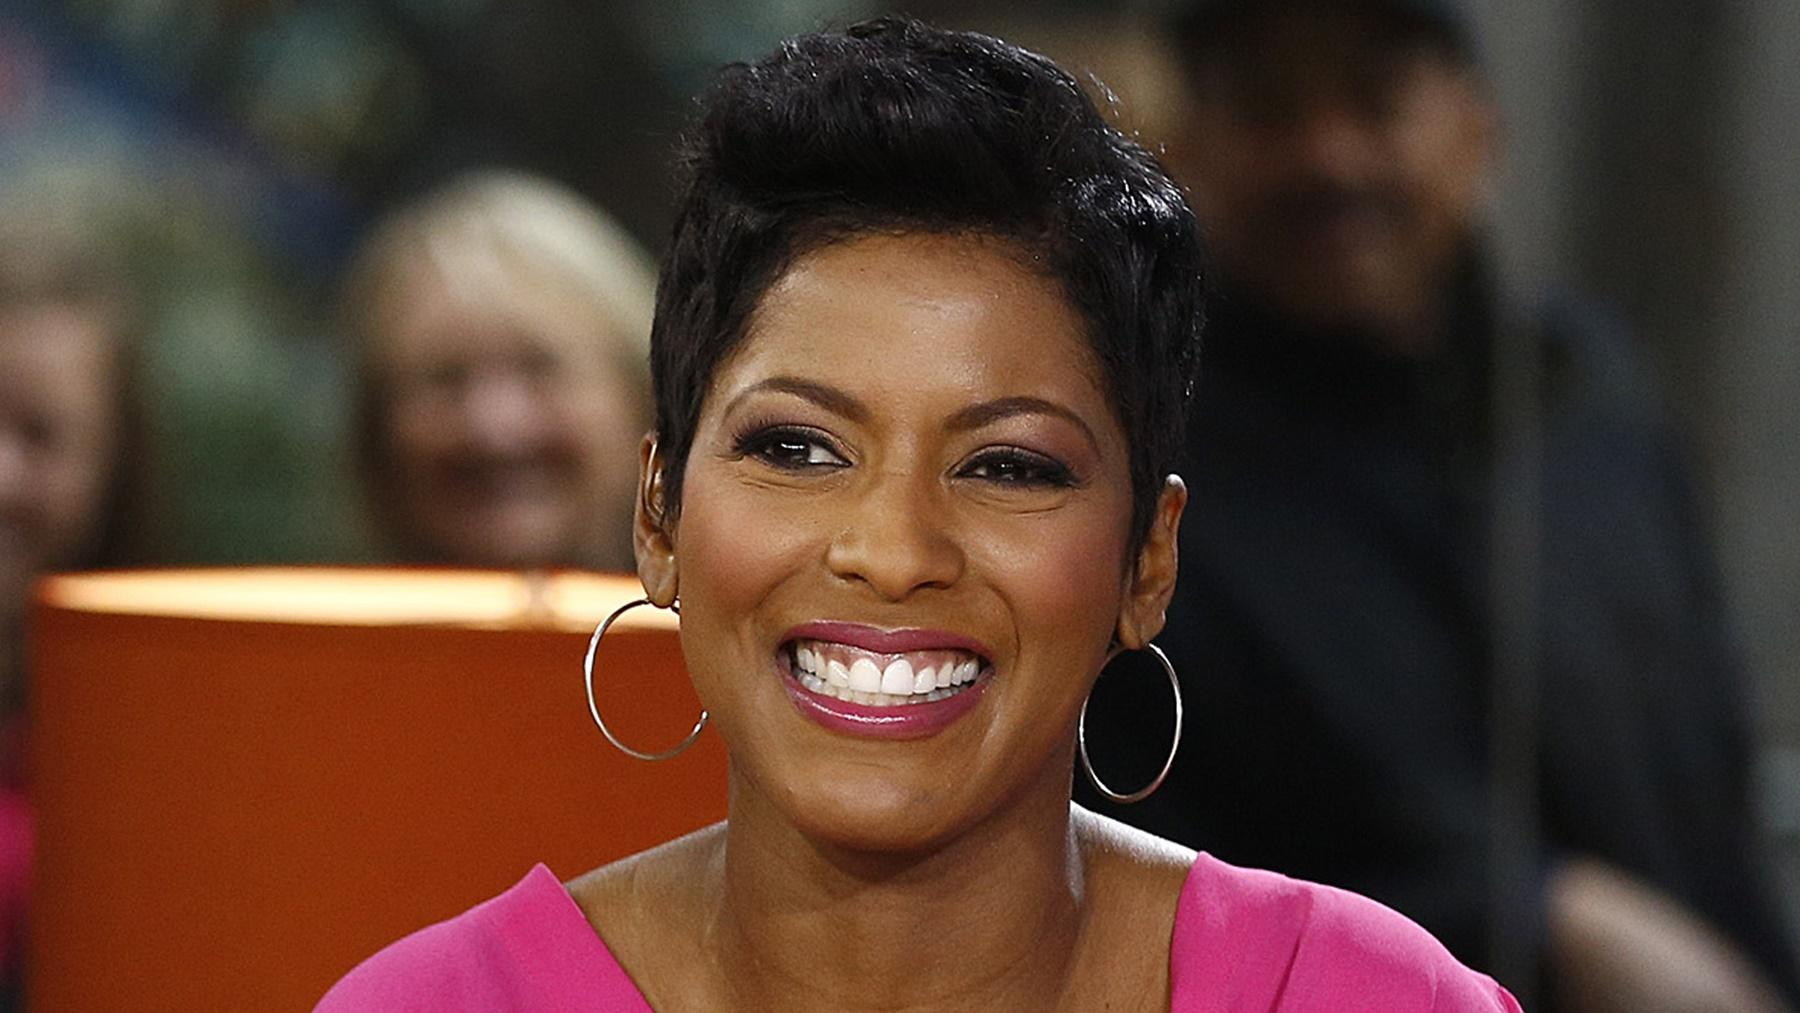 Tamron Hall Looks Gorgeous Wearing Sheer White Dress In Exquisite Picture At 9 Months Pregnant